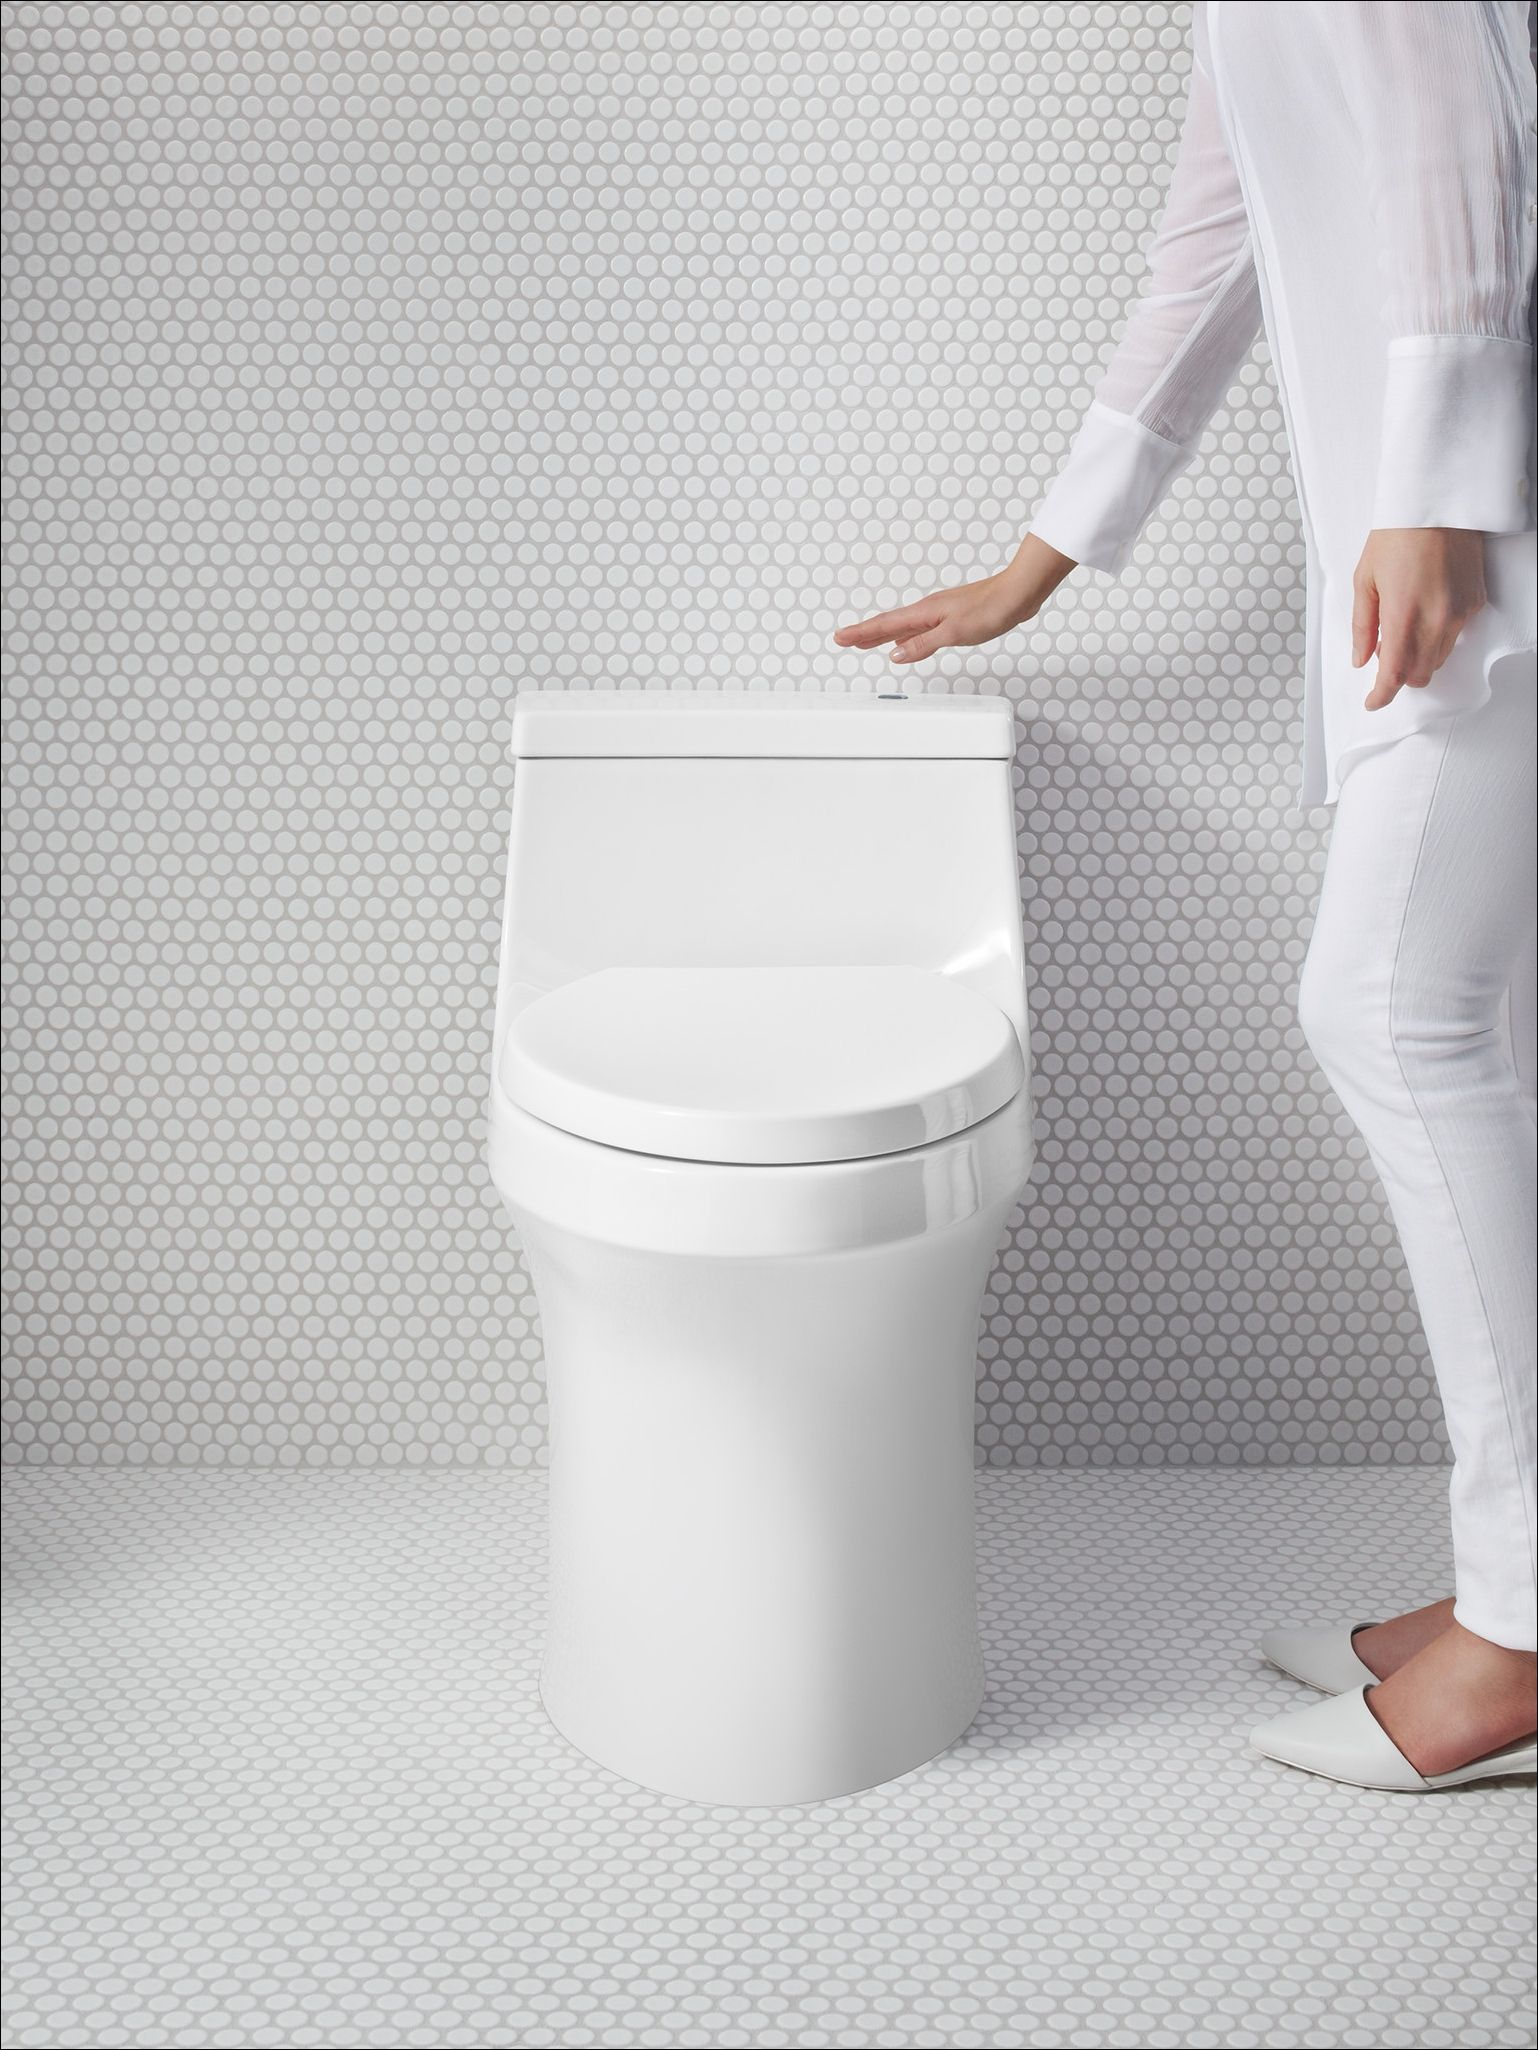 San Souci 1 28 Gpf Elongated One Piece Comfort Height Toilet With Seat And Cover With Touchless And Aquapiston Technologies Toilet Kohler Toilet Kohler